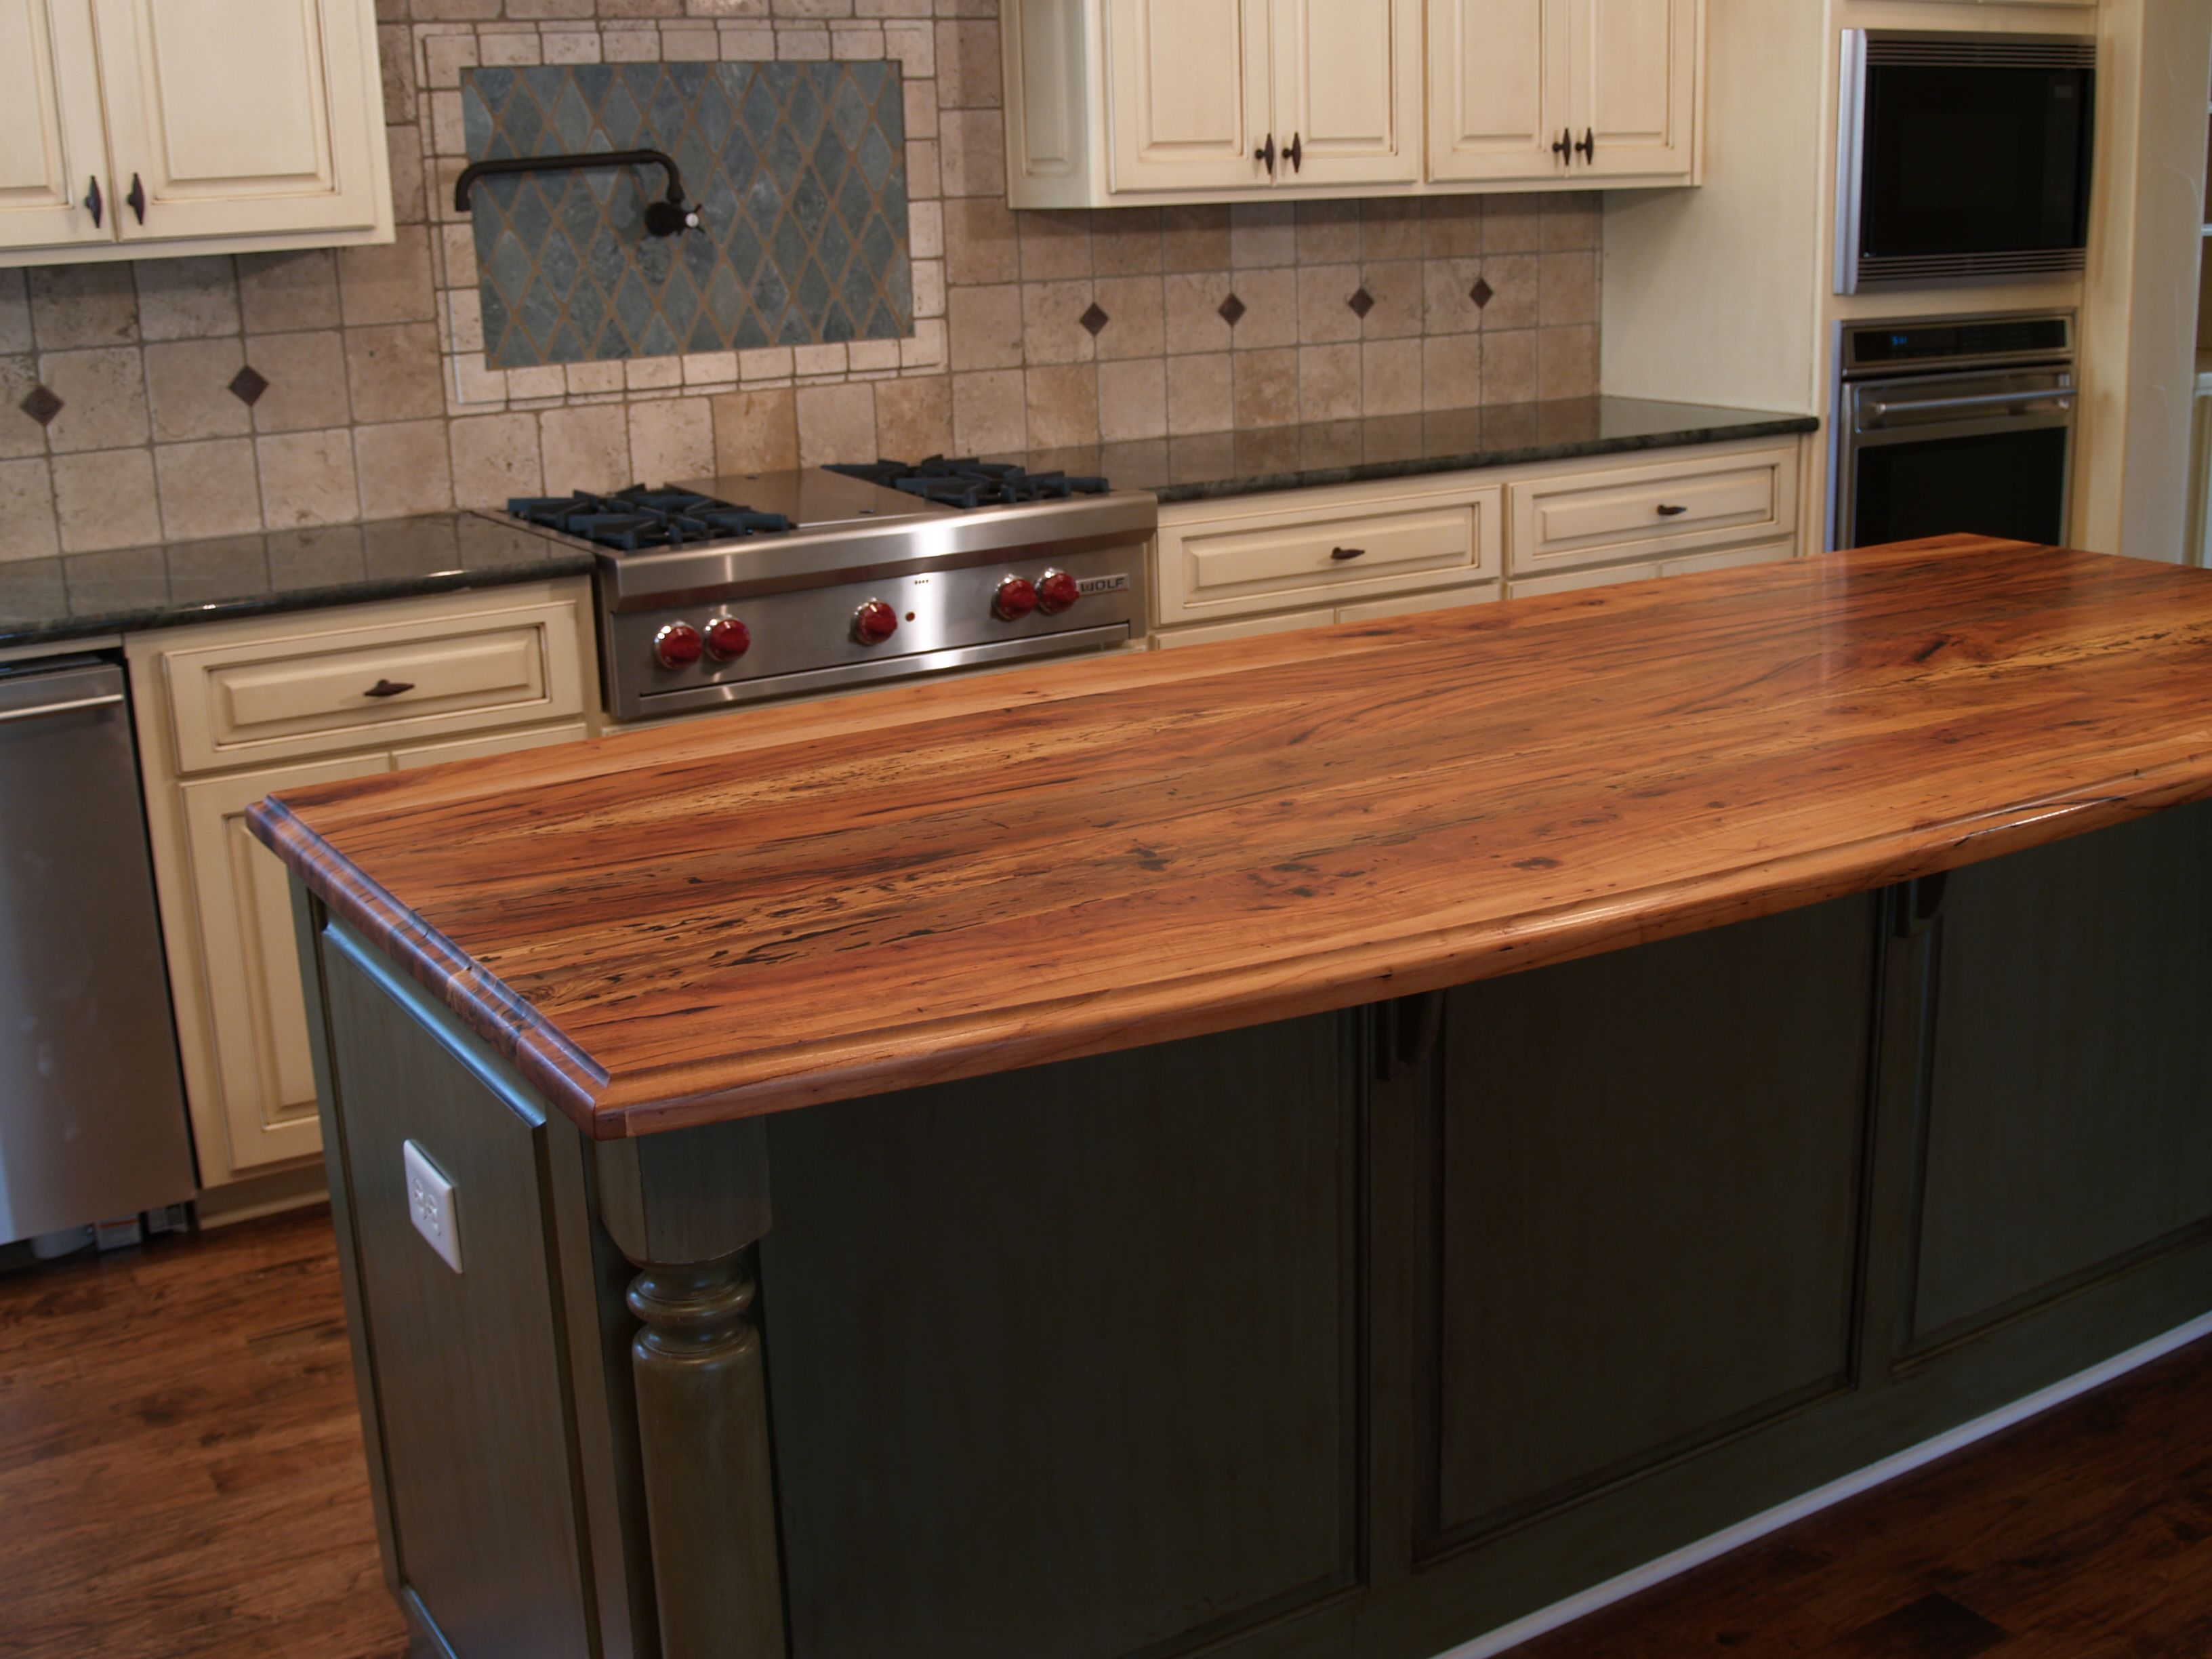 Best Wood For Butcher Block Countertops: Spalted Pecan Wood Countertop Photo Gallery, By DeVos